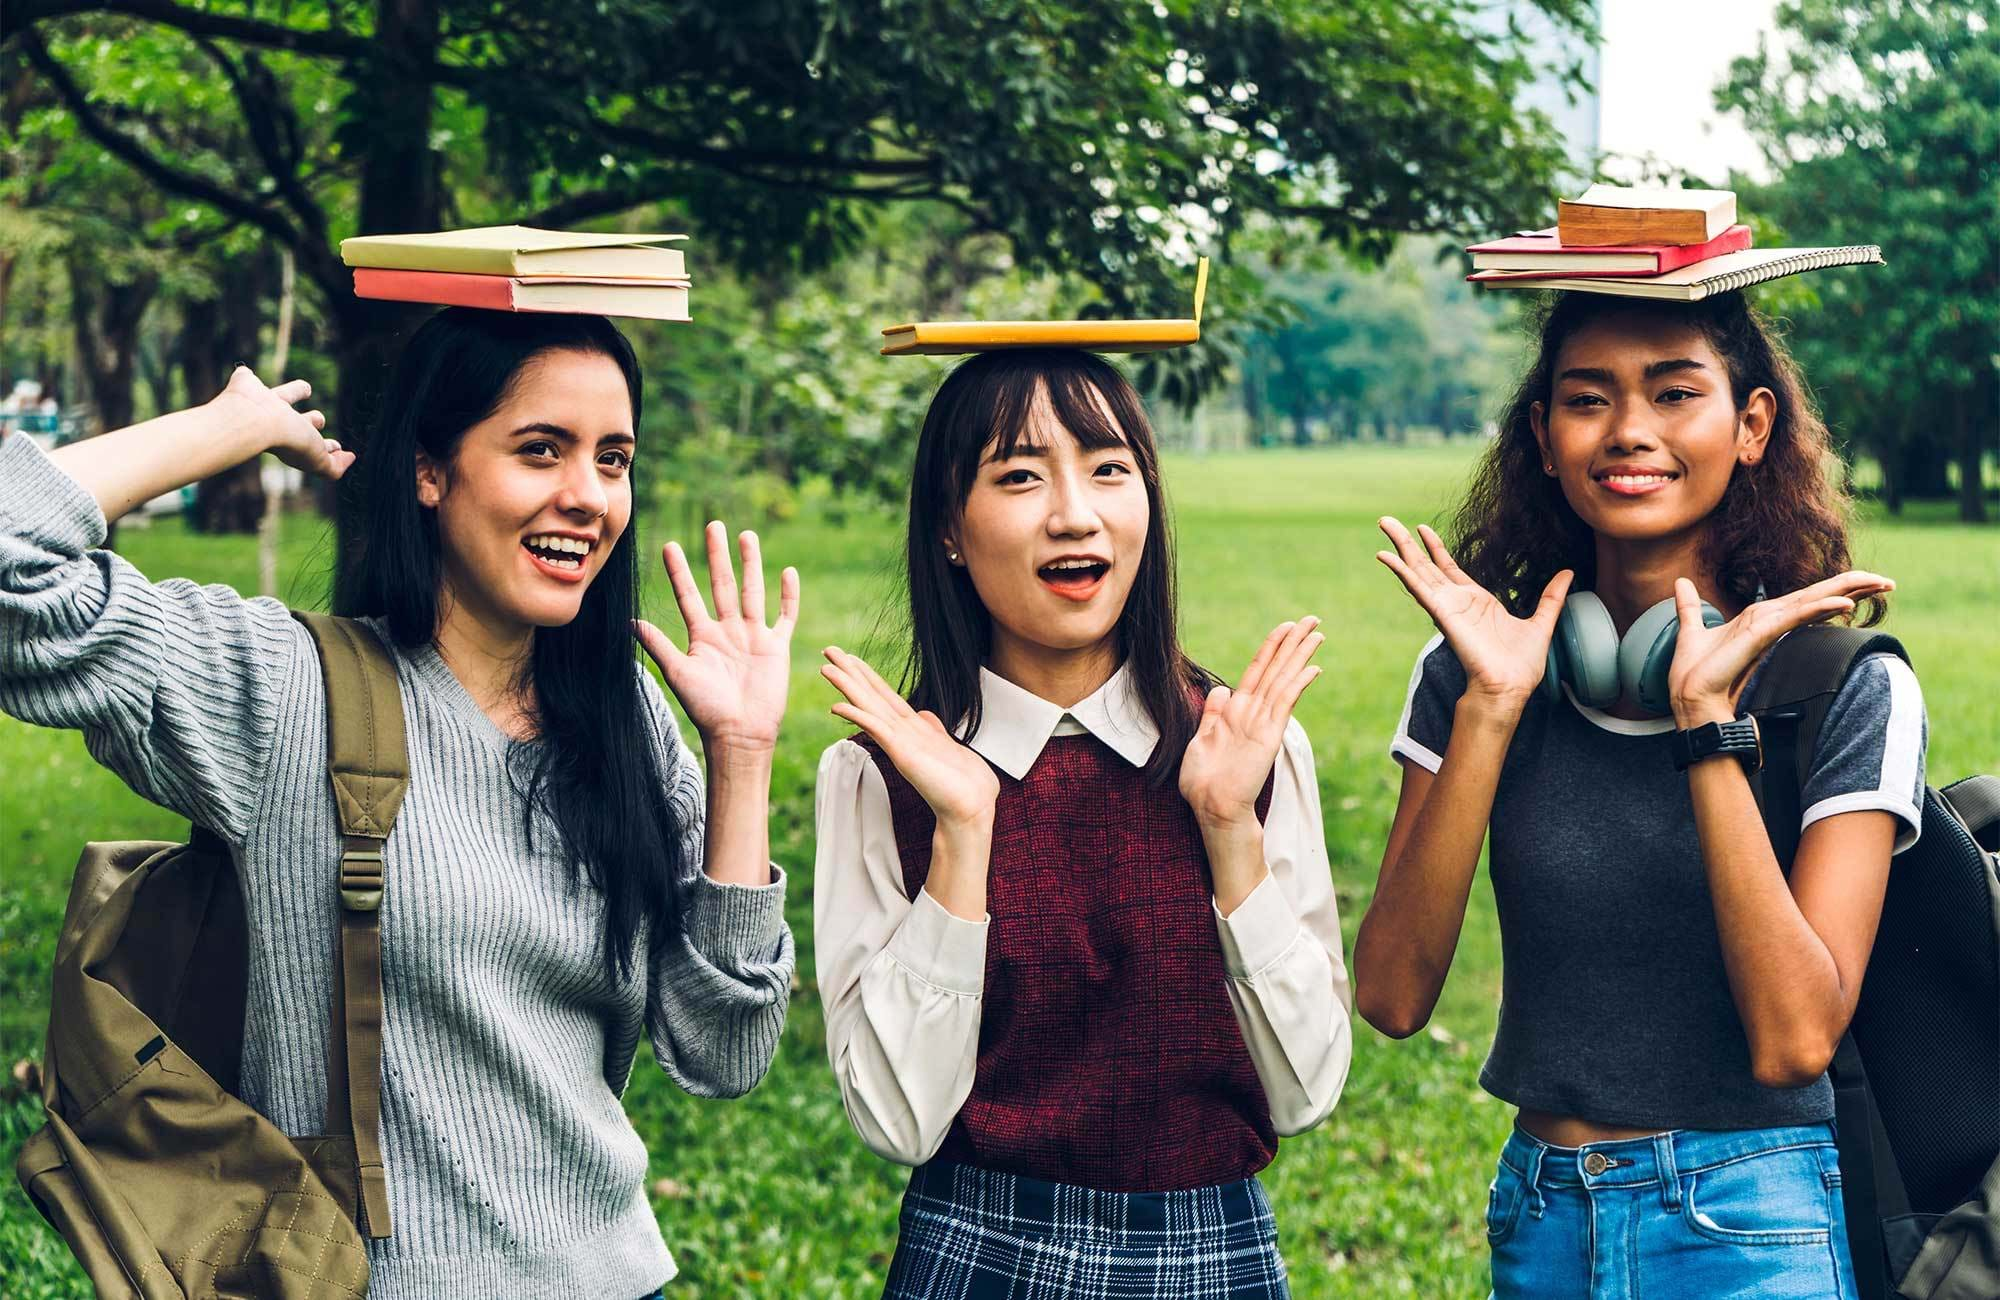 girls-student-group-standing-park-books